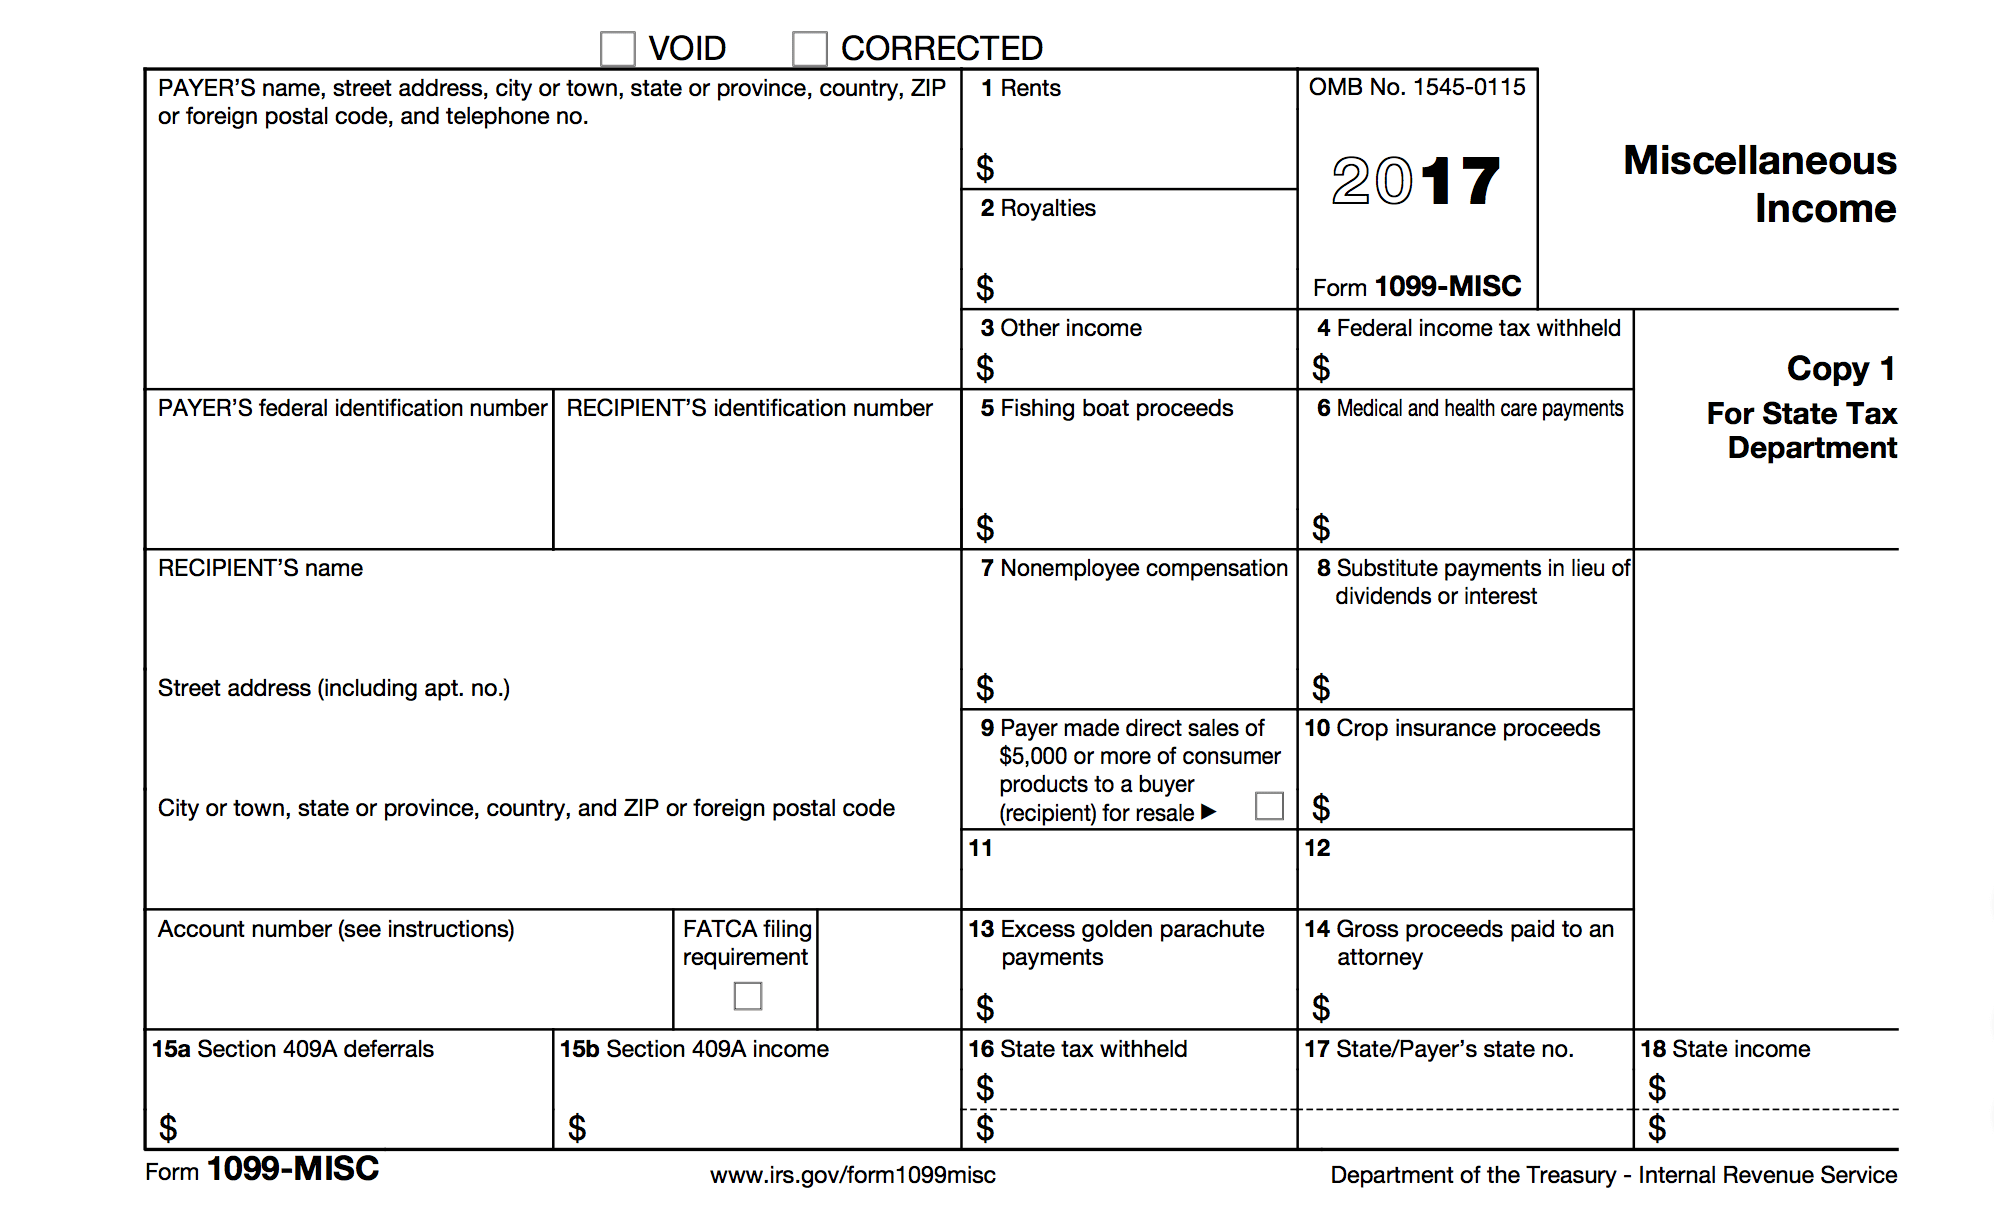 Irs Form 1099 Misc 2017 Printable